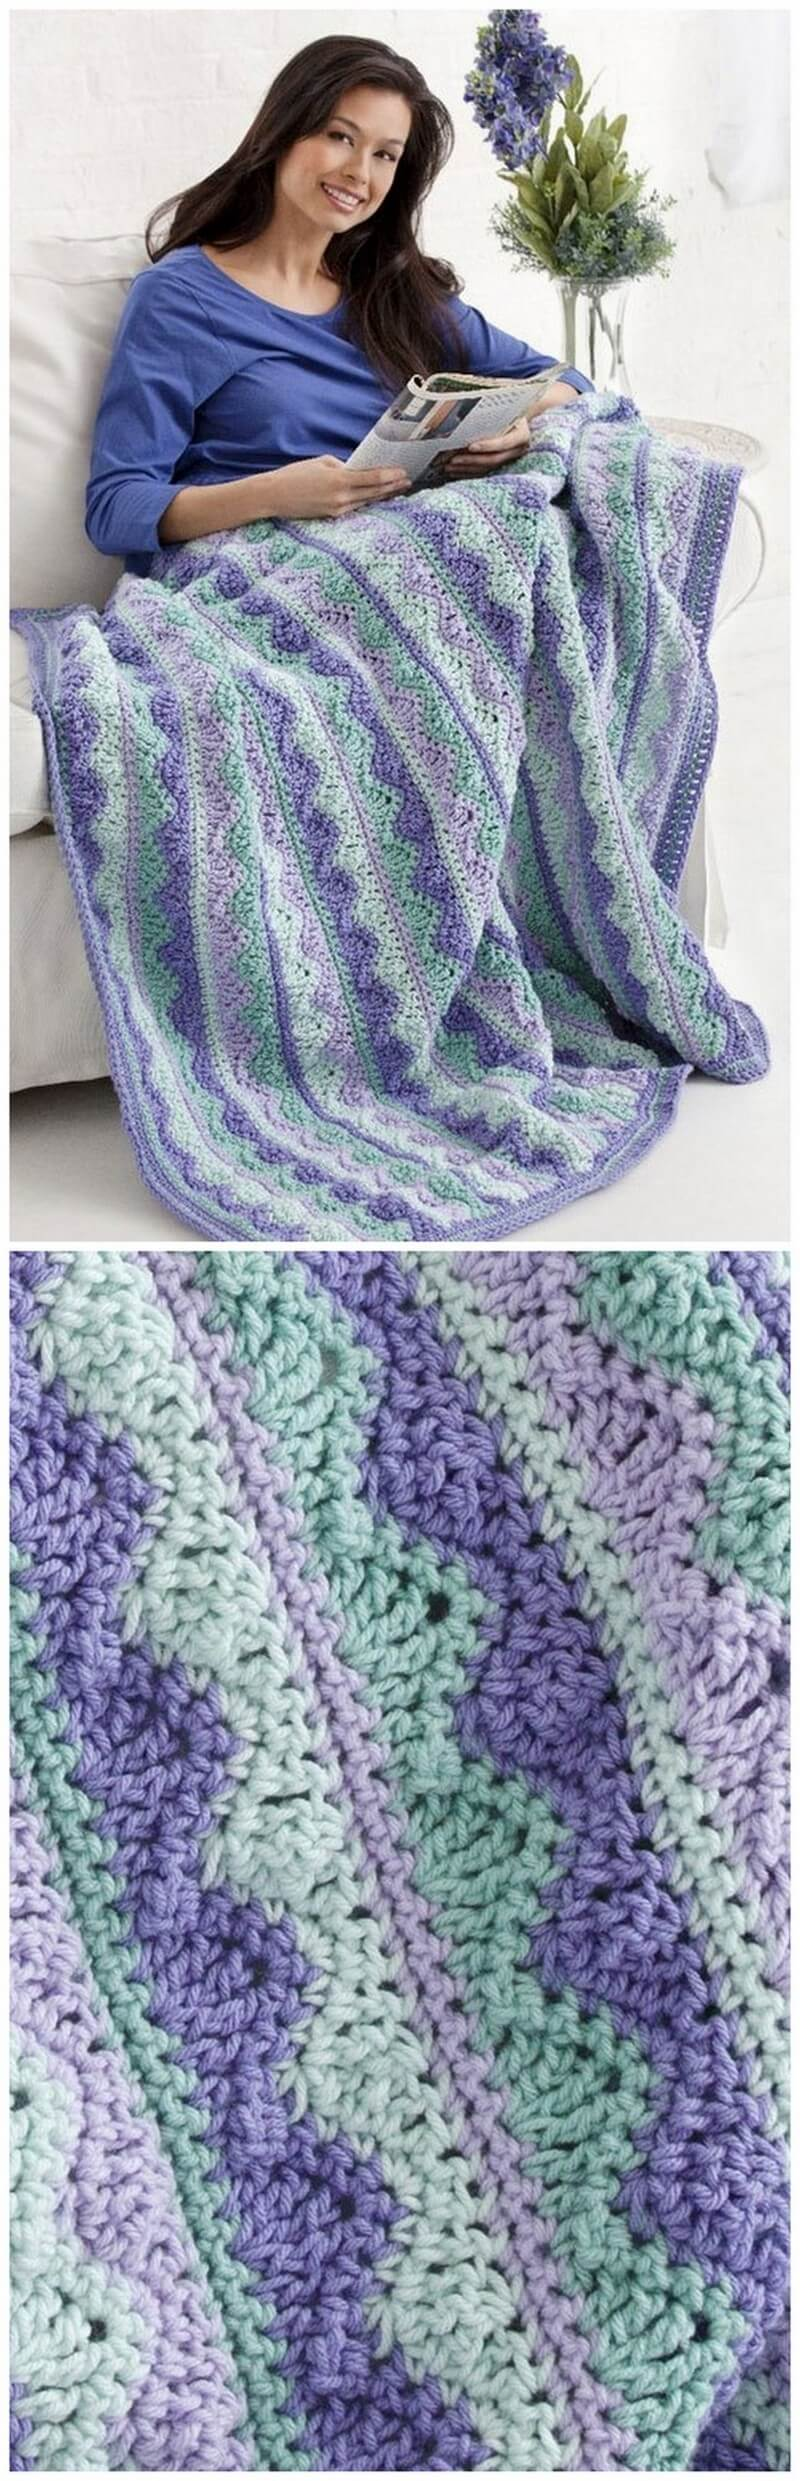 Easy Crochet Blanket Pattern (56)